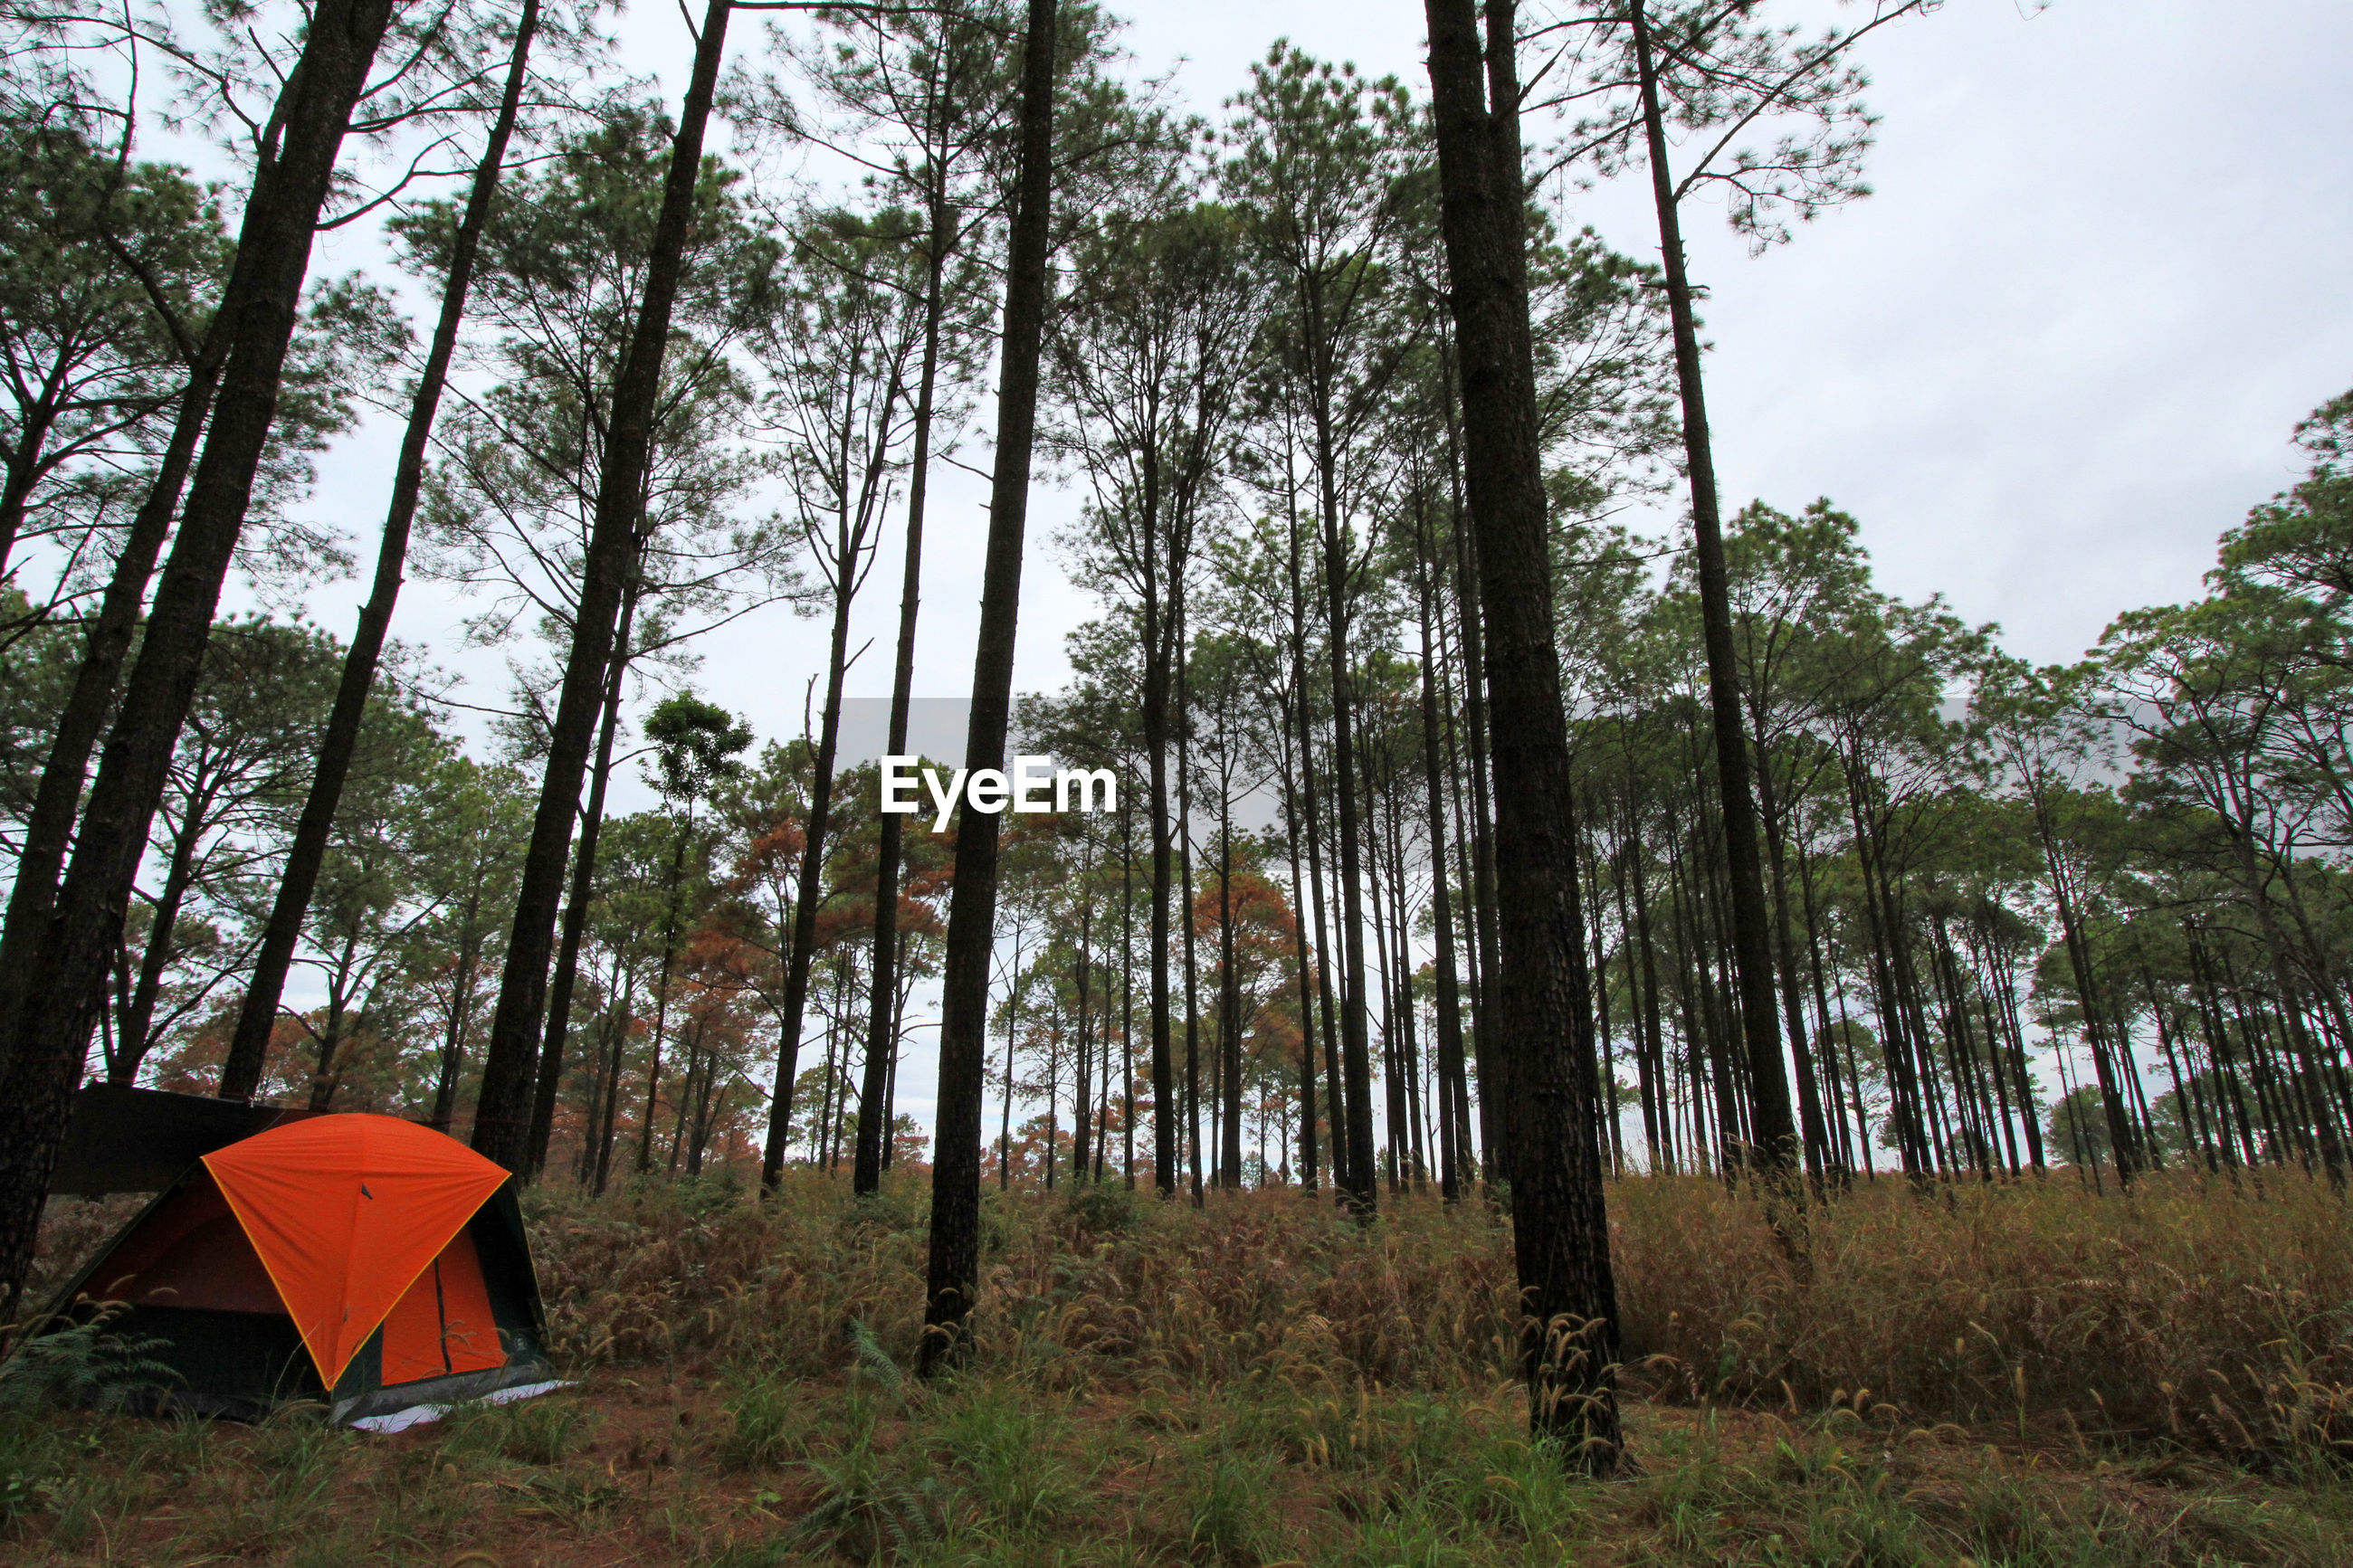 Low angle view of trees in forest against sky with camping and orange tent